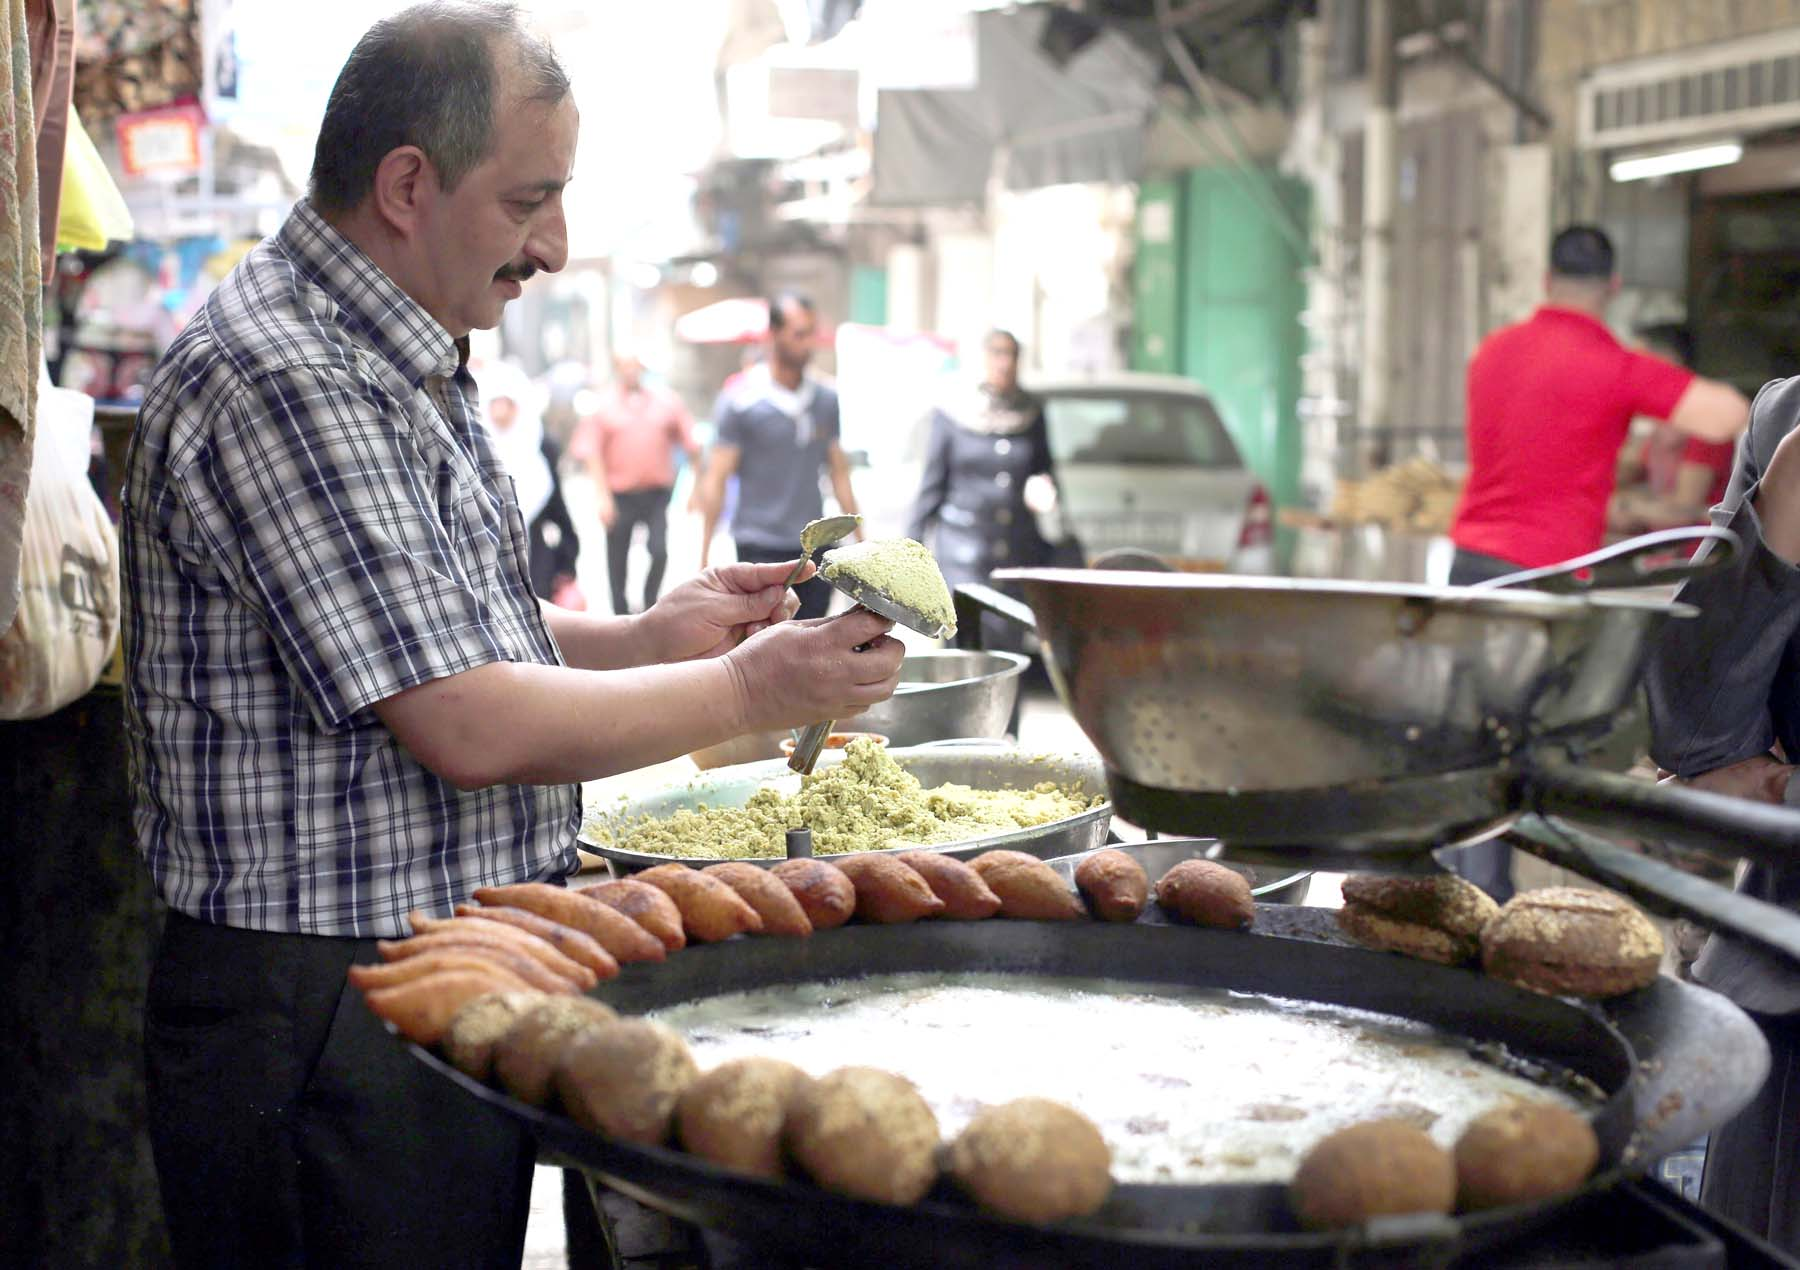 More than what's on a plate. A Palestinian man makes falafel, a  traditional dish consisting of fried chickpeas, on a street in Nablus.   (AFP)